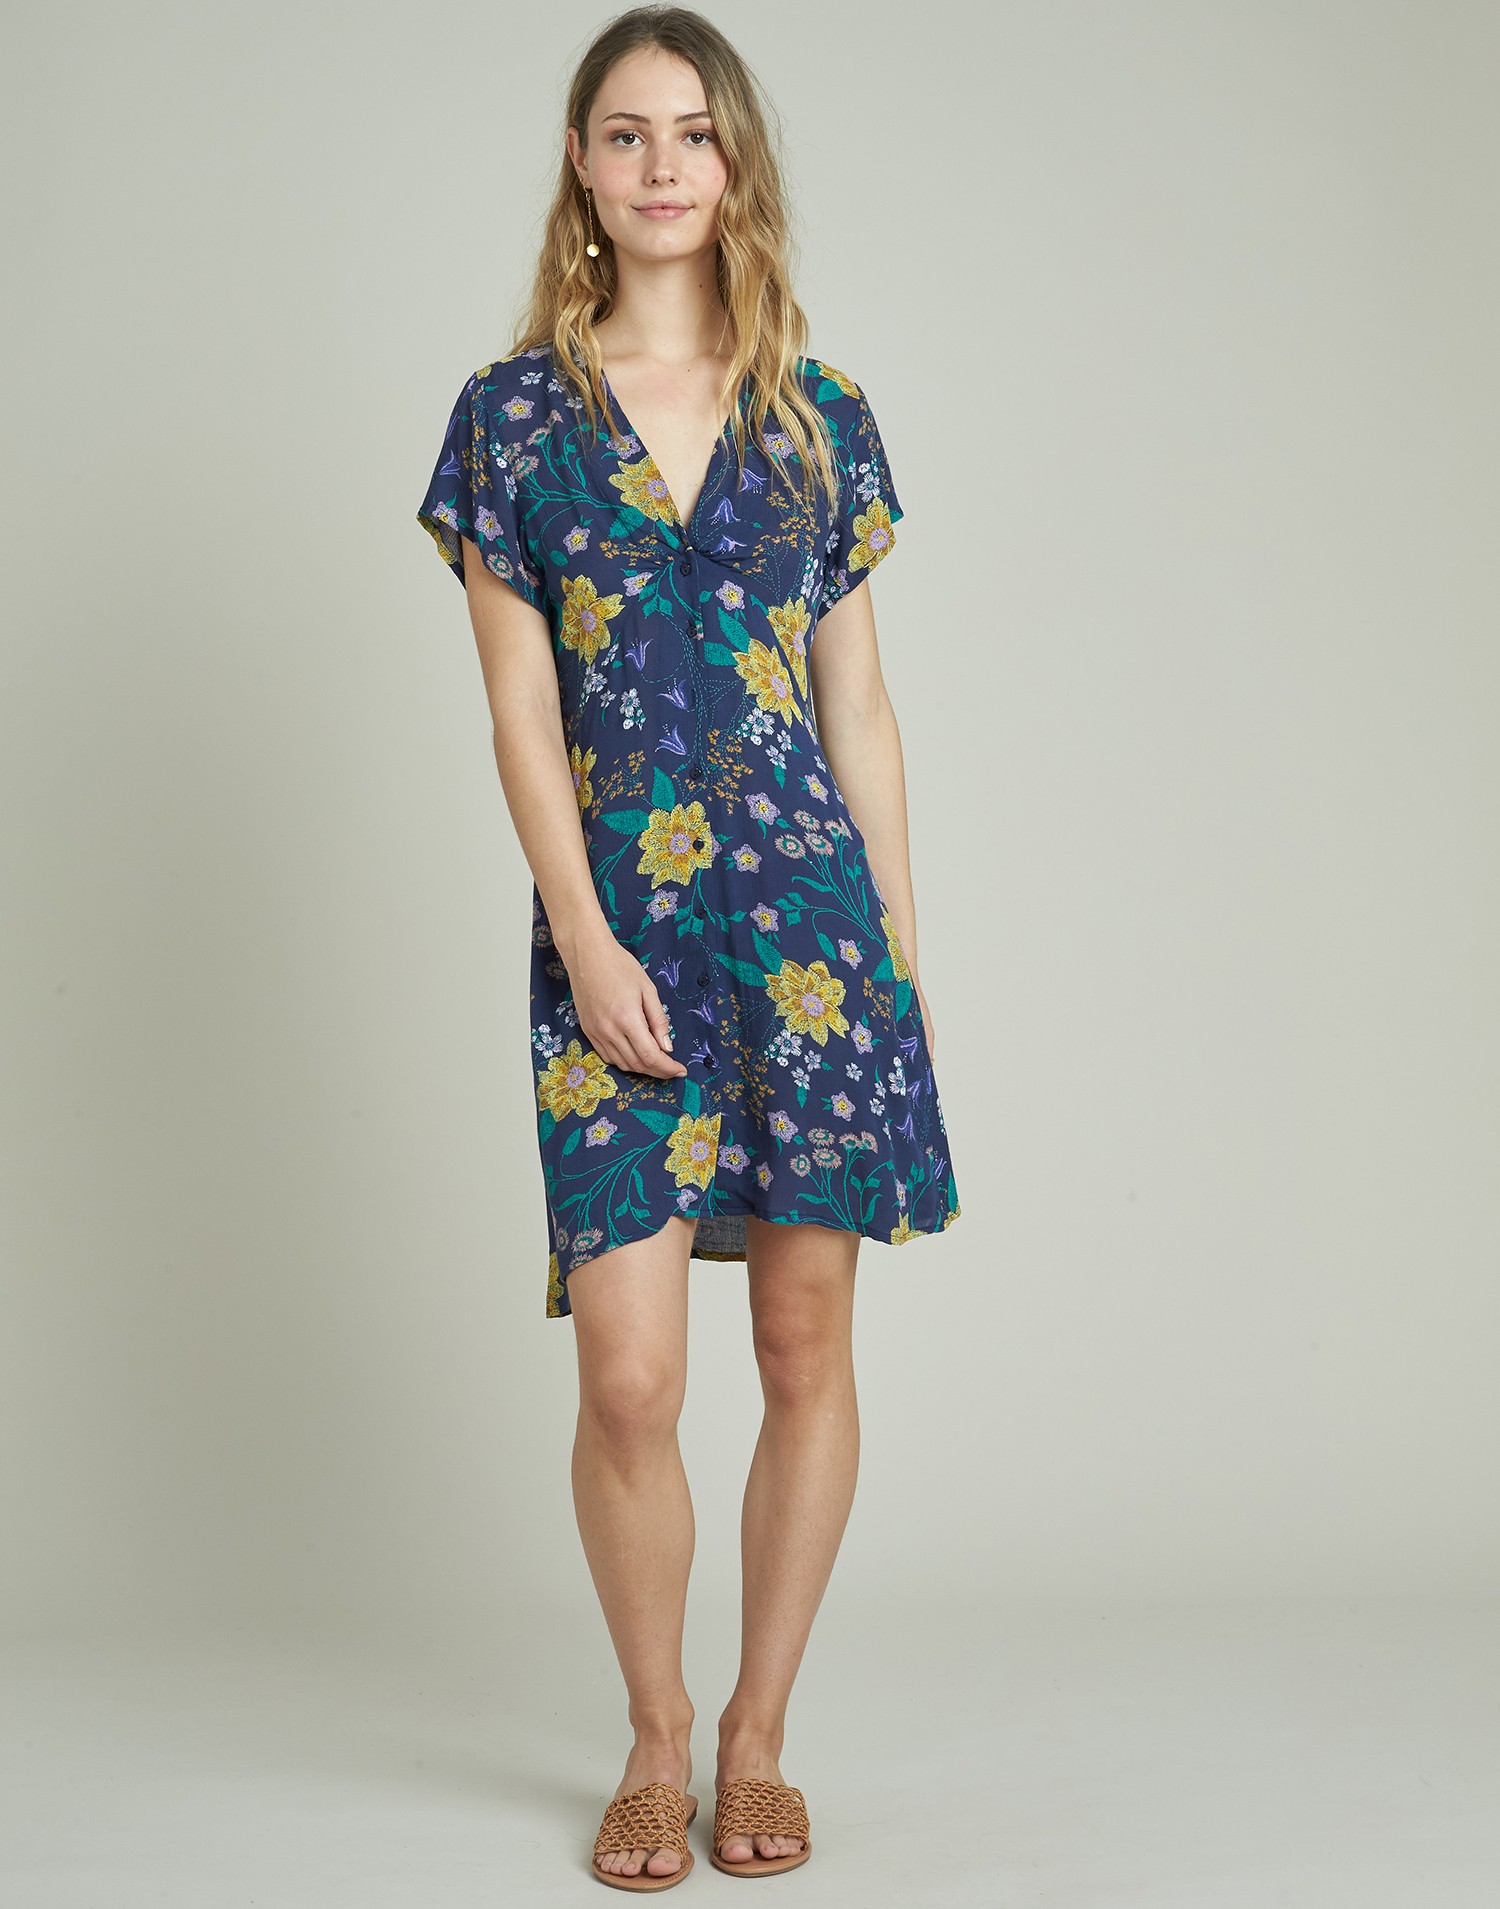 Flowered short printed dress